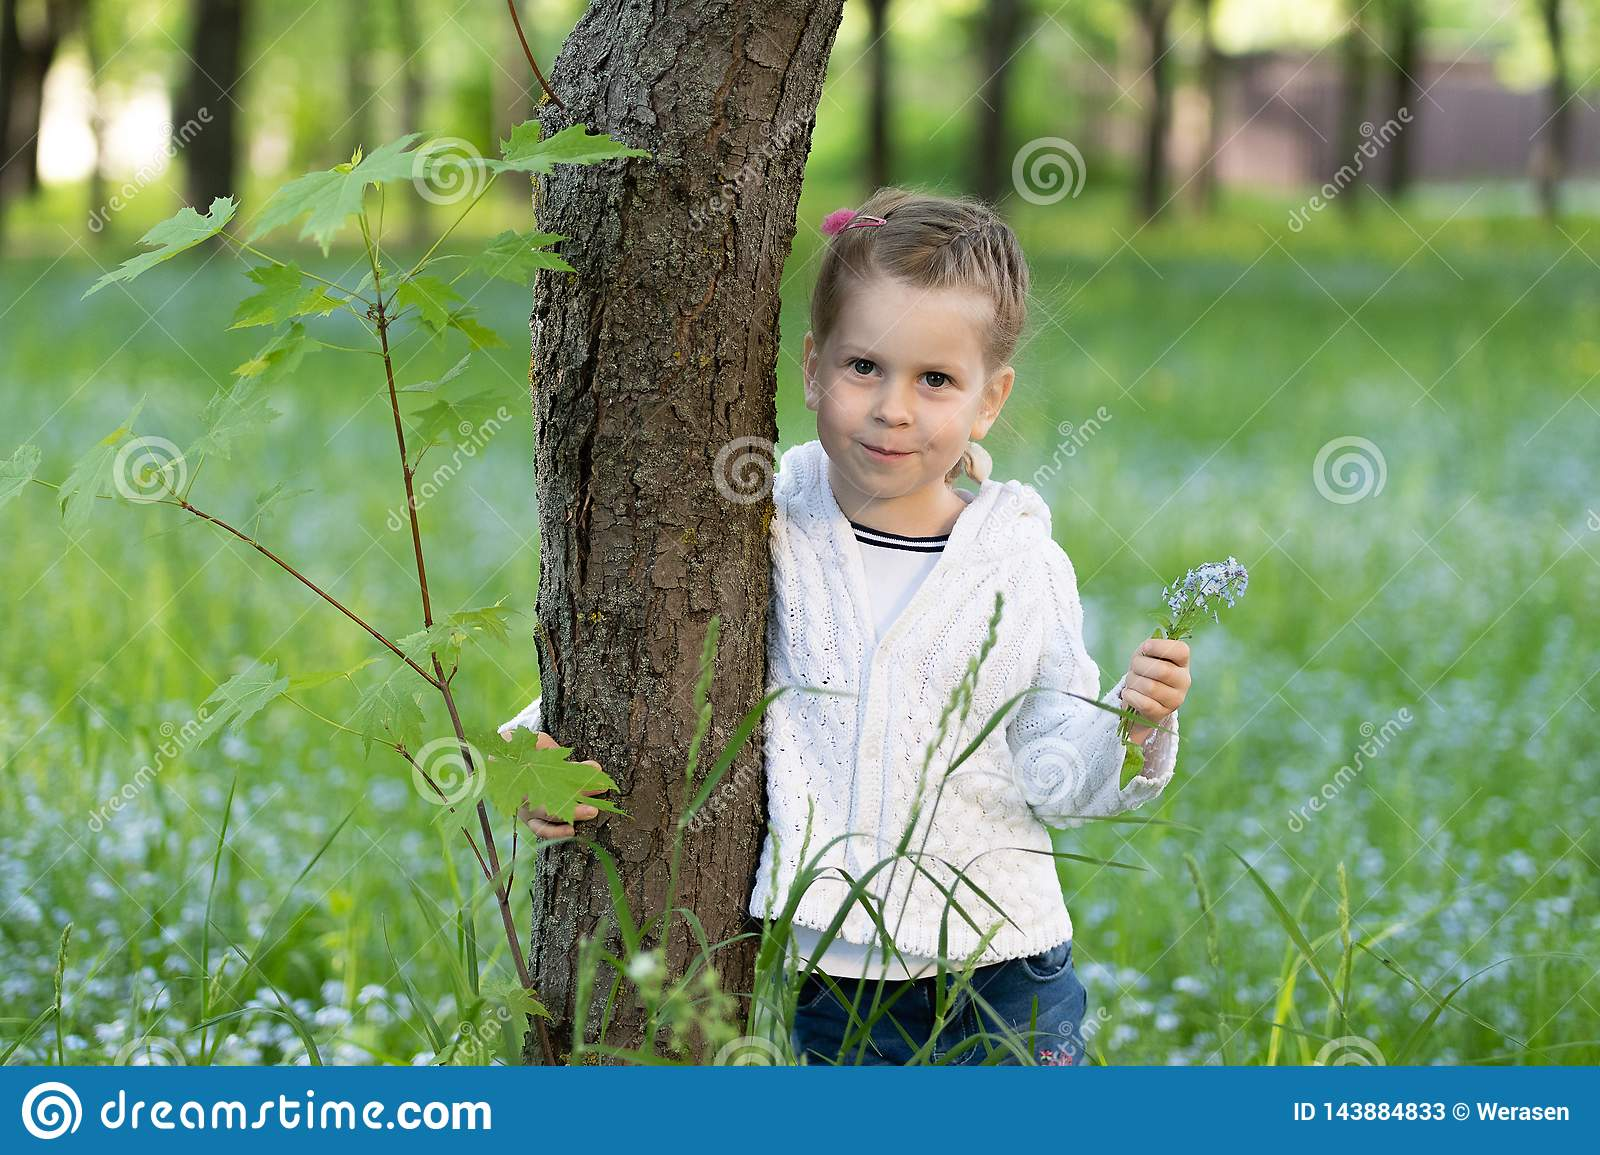 Ittle girl with a bunch of forget-me-nots in her hand peeking from behind a tree